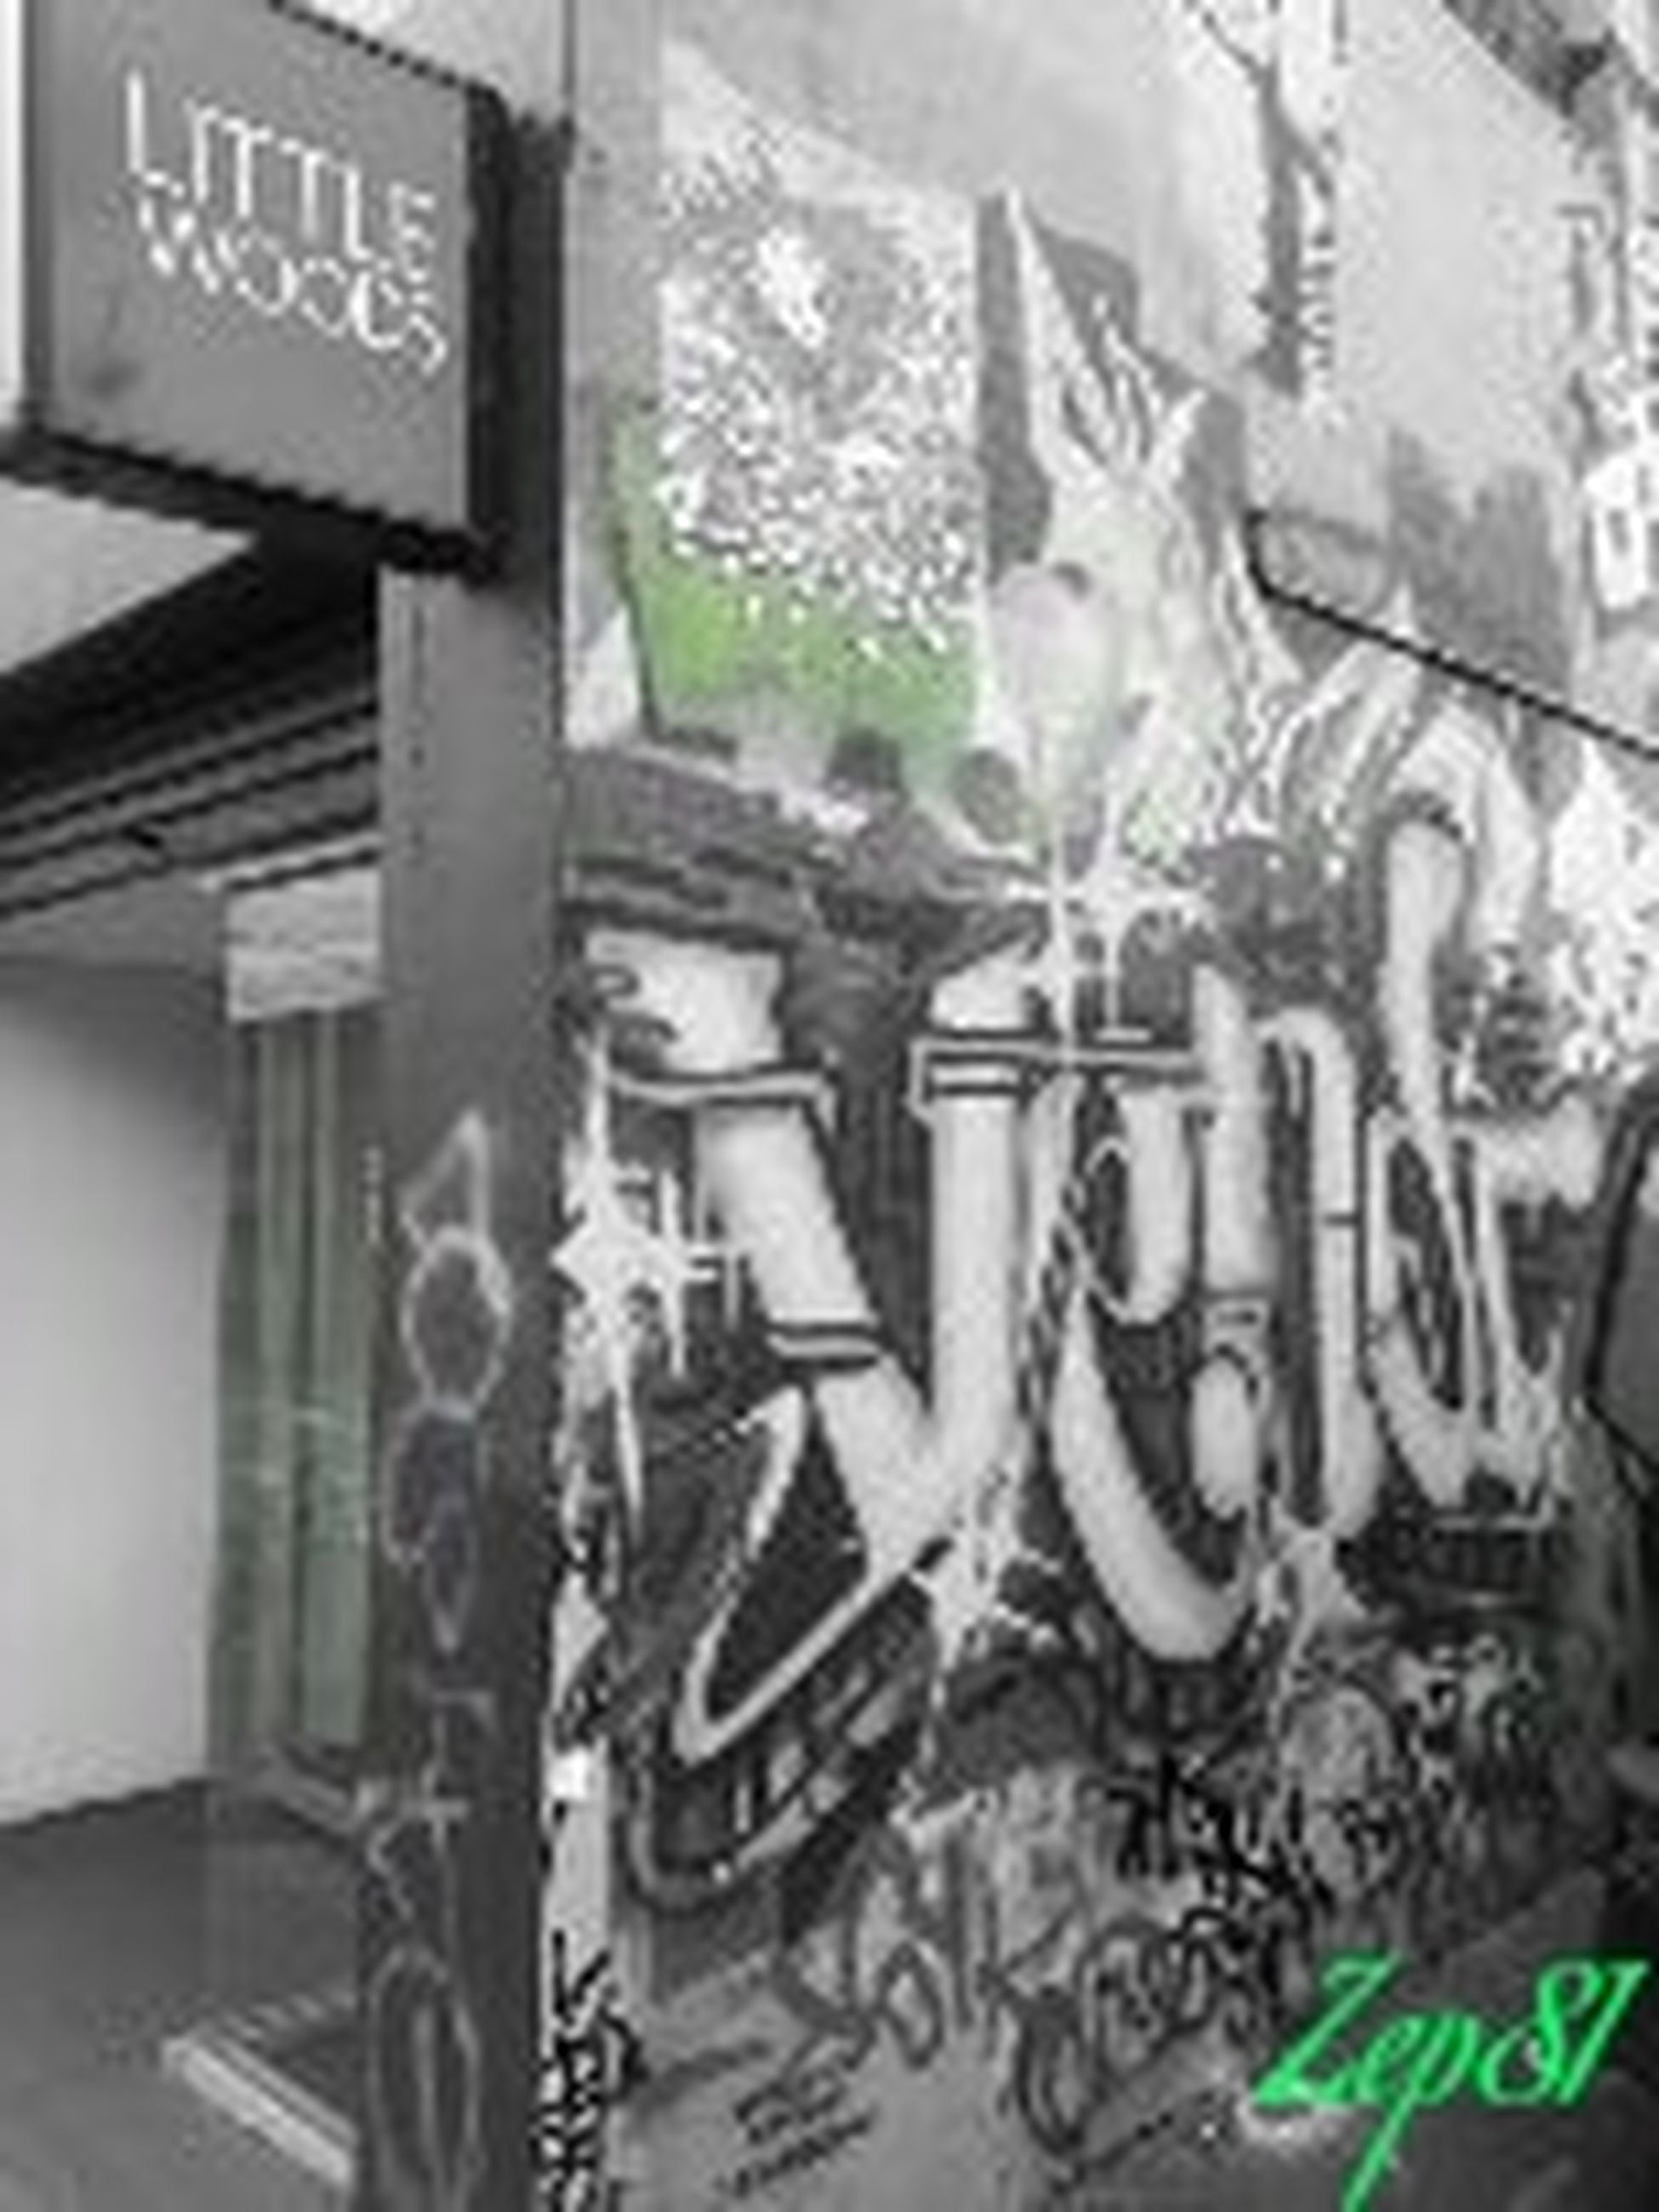 text, western script, communication, architecture, built structure, building exterior, graffiti, city, wall - building feature, non-western script, indoors, window, no people, information sign, day, sign, building, street, close-up